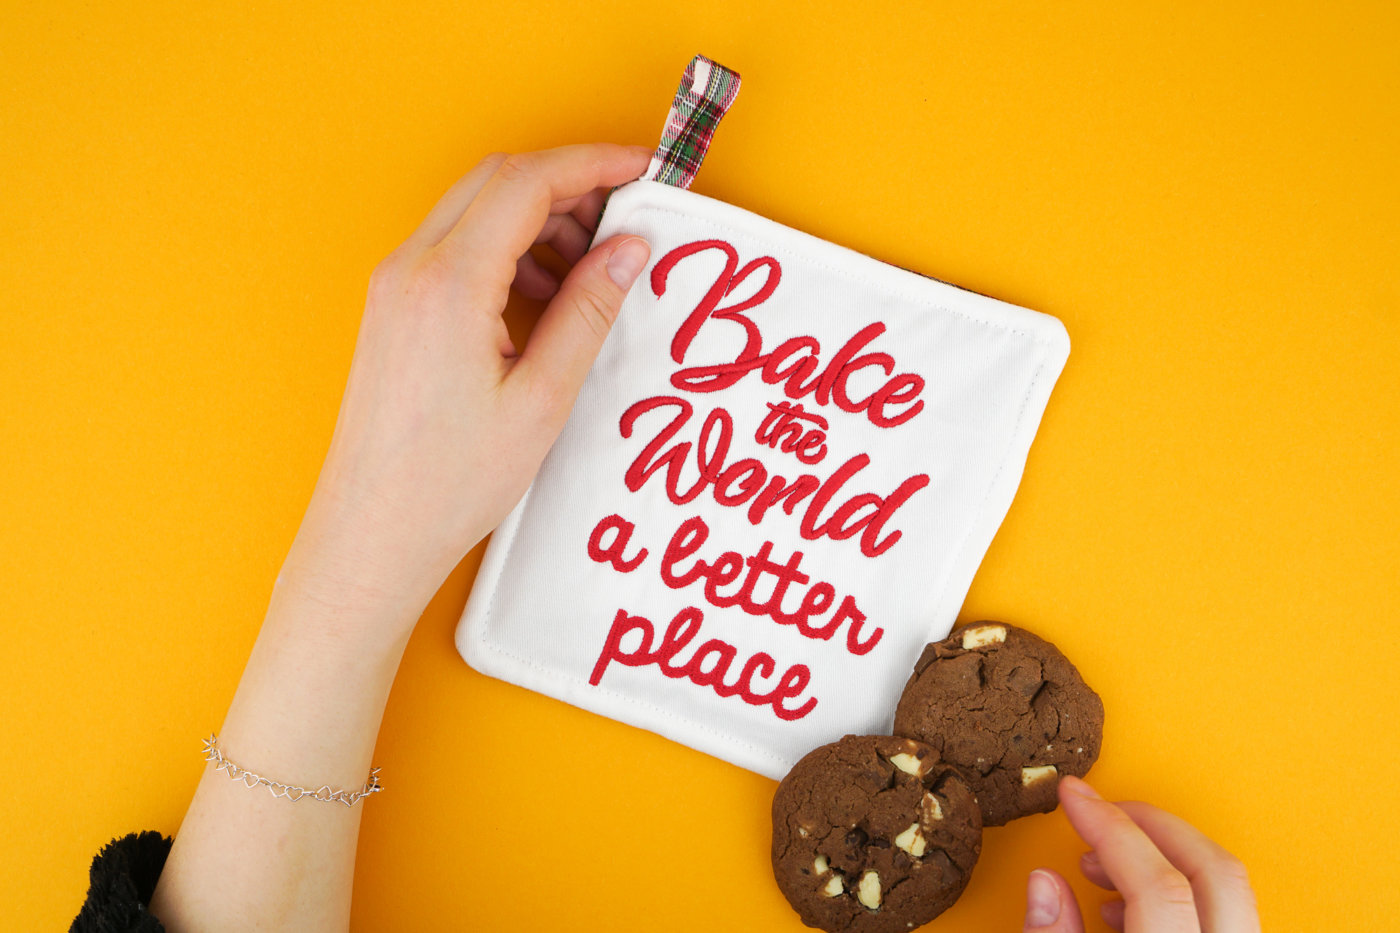 Stickdatei zum Thema Backen stickdatei küche Schriftzug »bake the world a better place« stickdatei backen bake world better place 0 1400x933